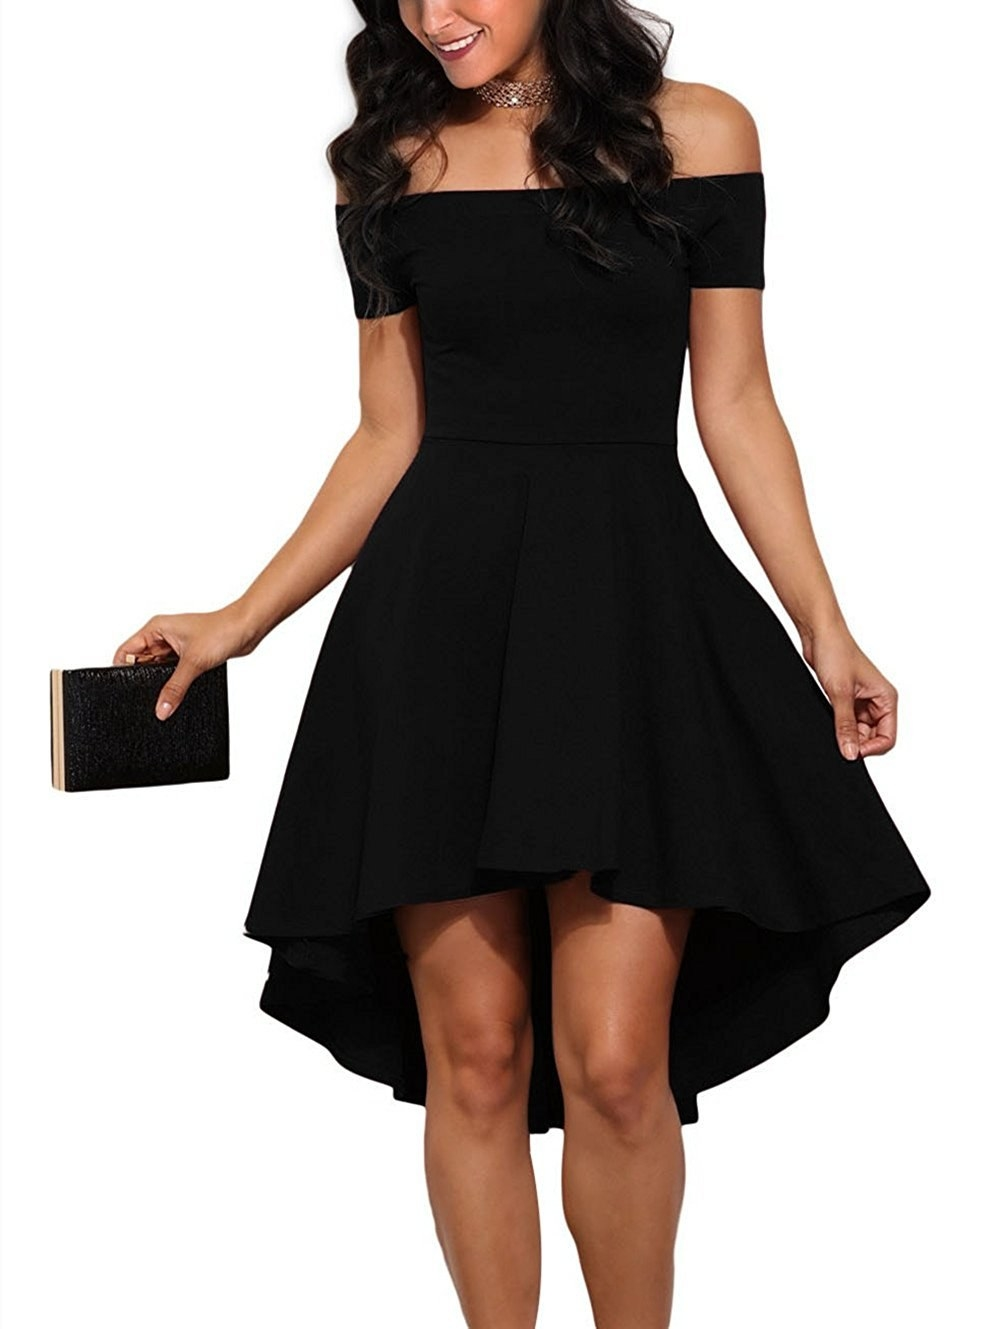 4d249cc4ff6 A skater dress with an off-shoulder neckline you will want to wear to all  83 weddings you have to attend this summer. (It s so comfy